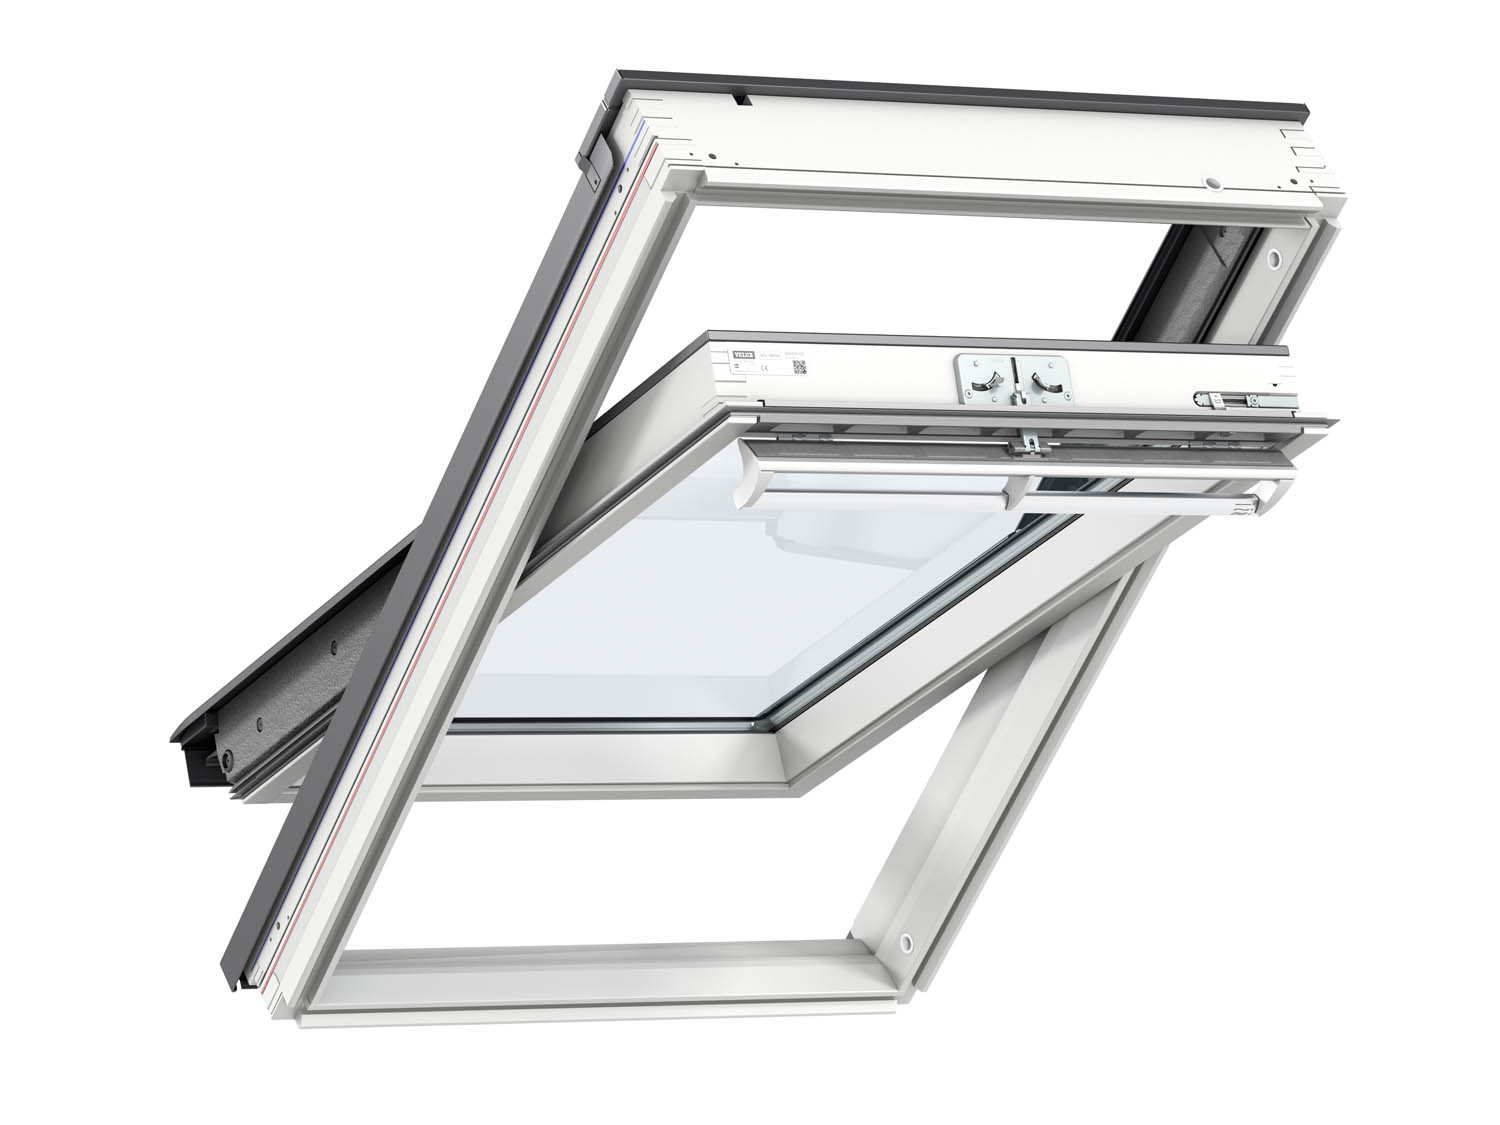 Velux 550mm x 780mm White Roof Window GGL2070 CK02